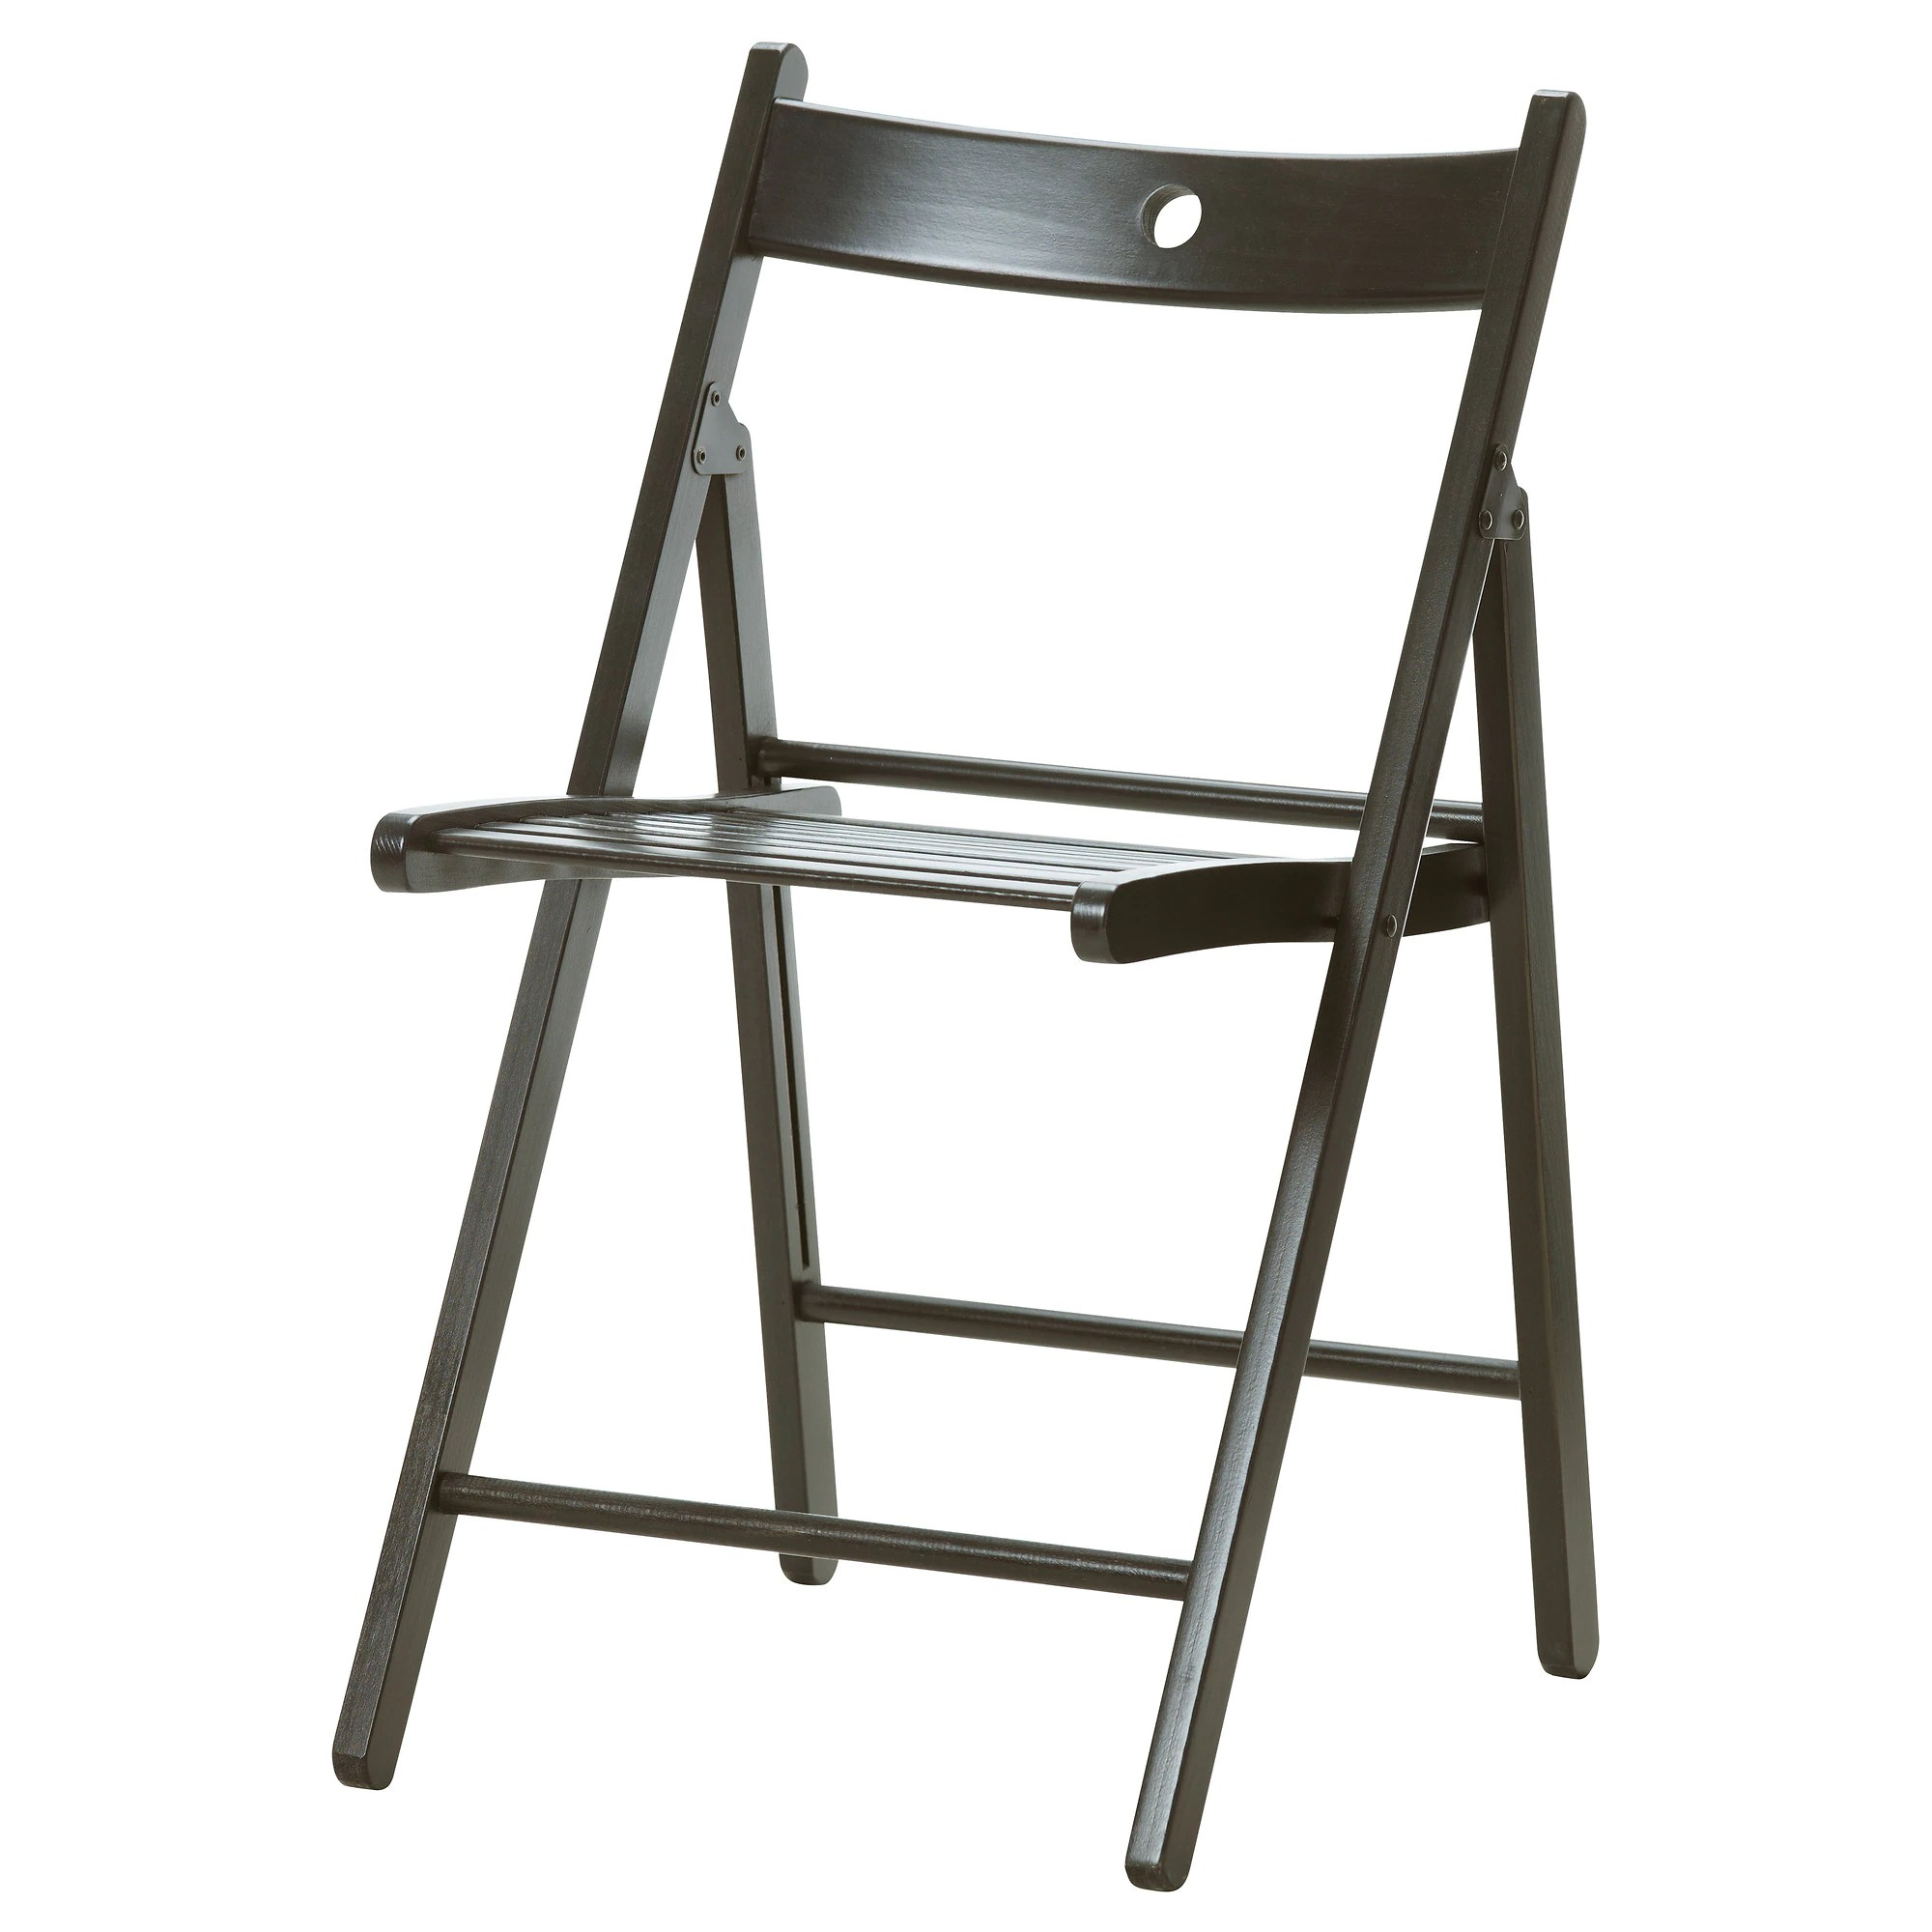 folding chair for less vaginal steam terje ikea feedback